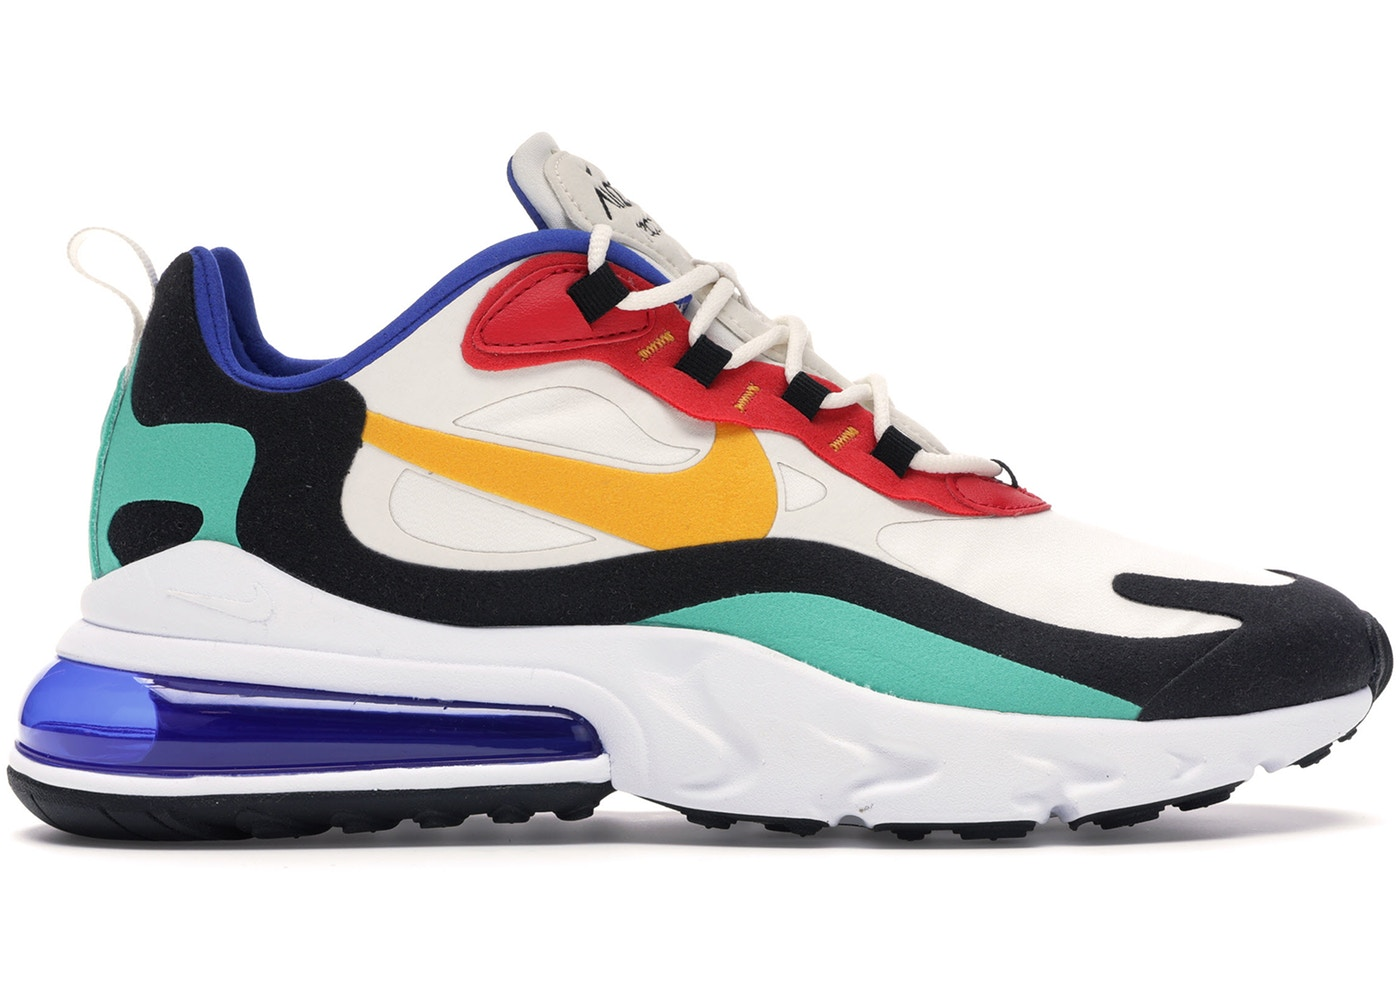 air max 270 react uomo zalando